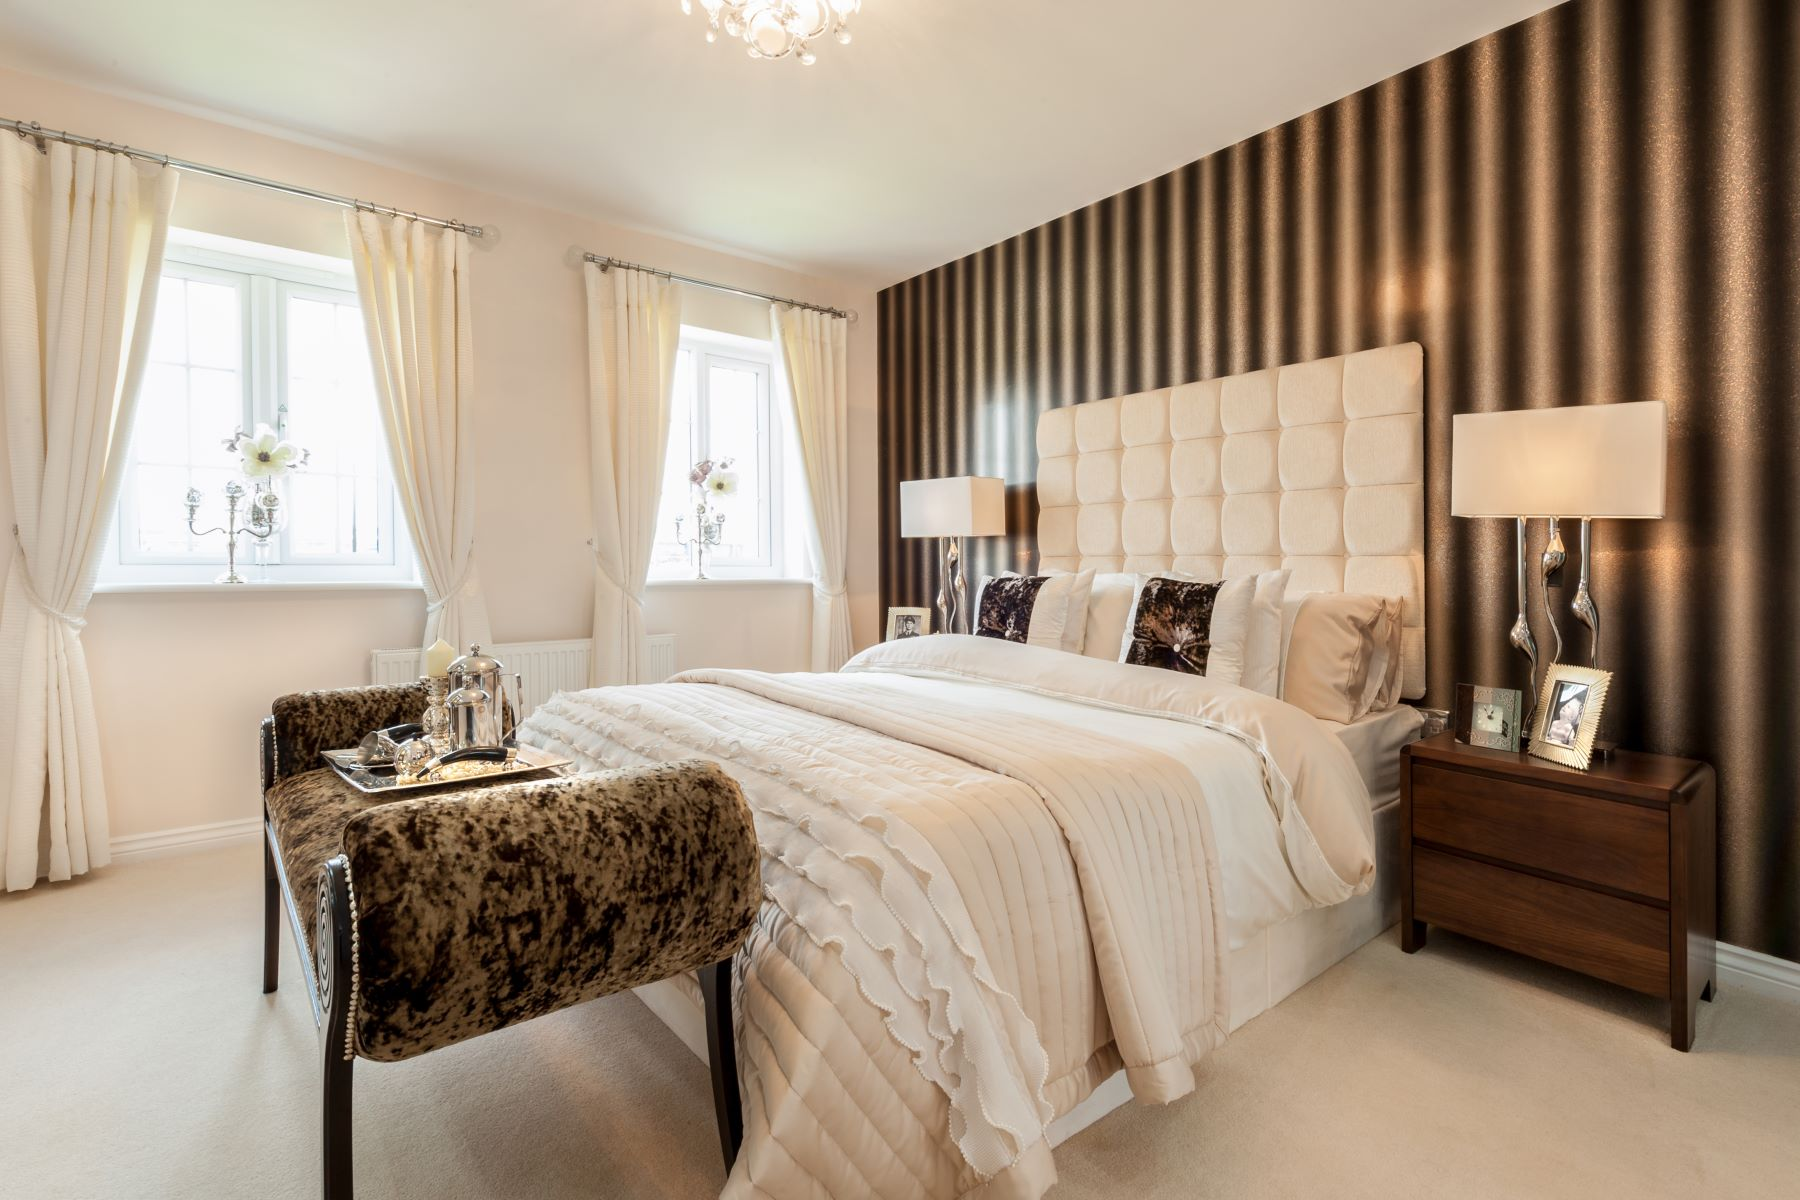 010_Master_Bedroom_Haddenham